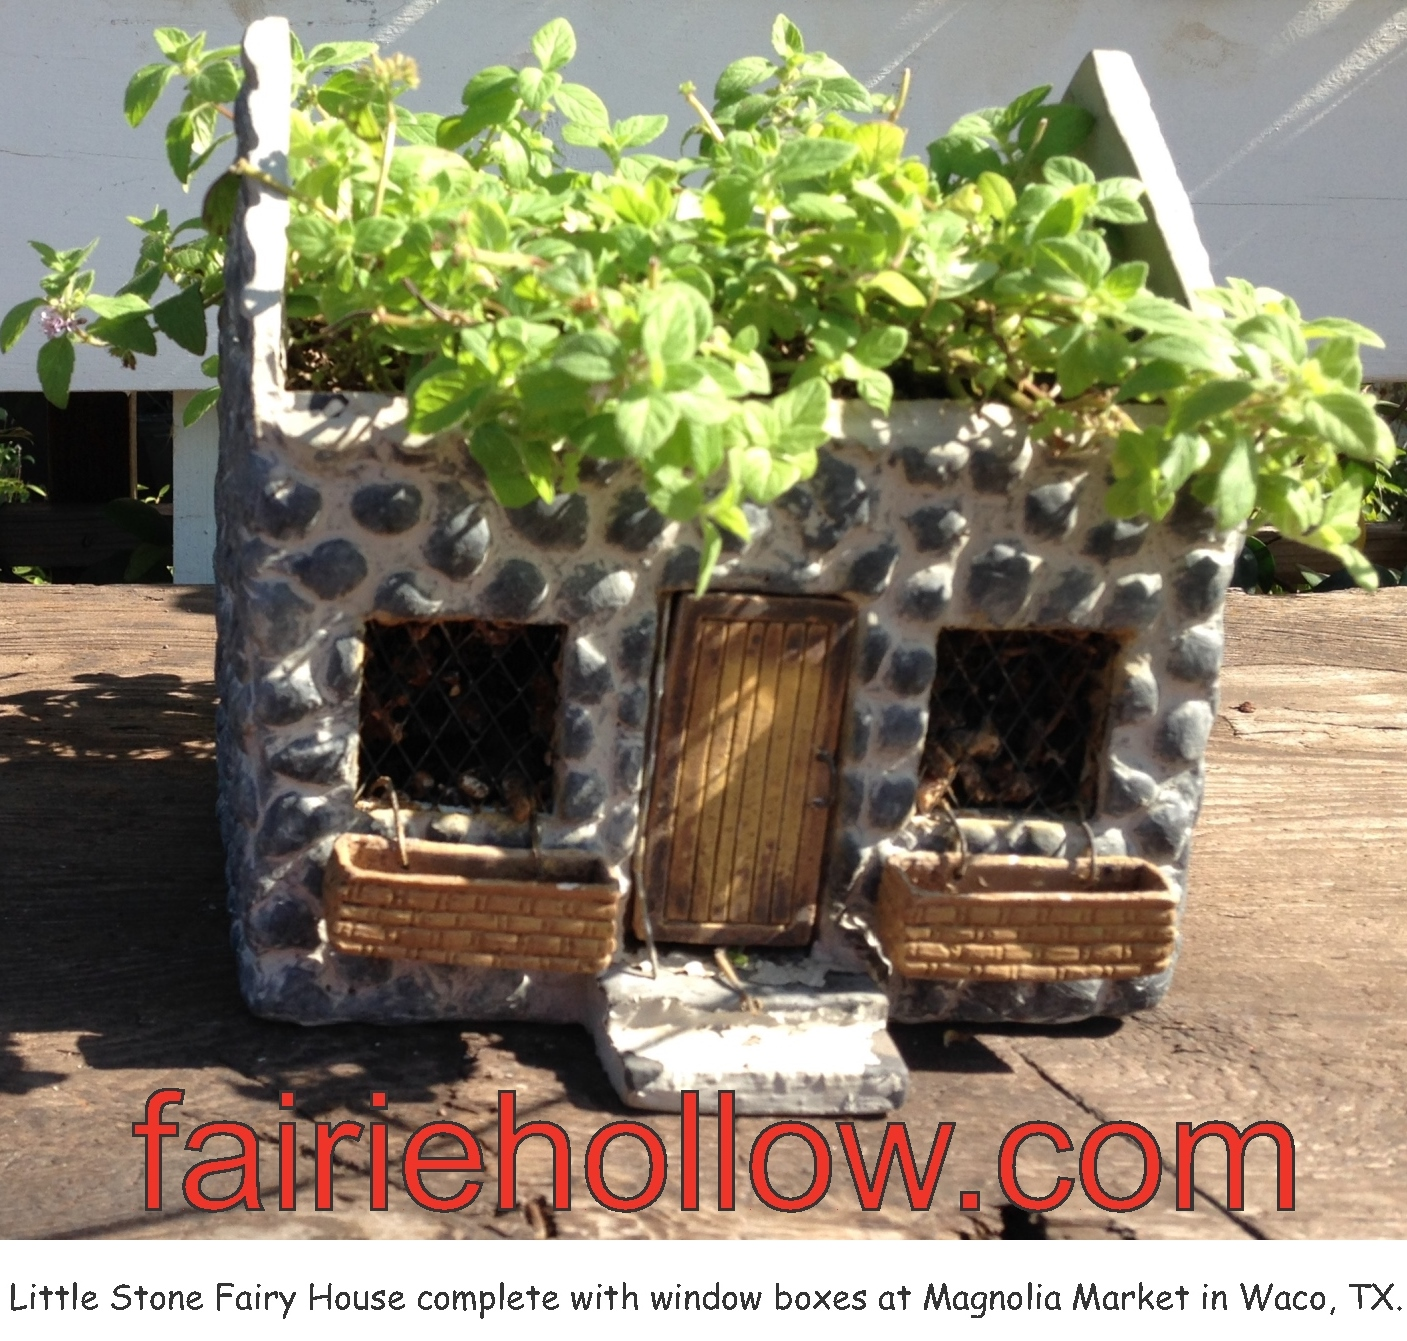 At Magnolia-Market in Waco, Texas, in their fairy garden was a stone fairy house with a planted roof | fairiehollow.com